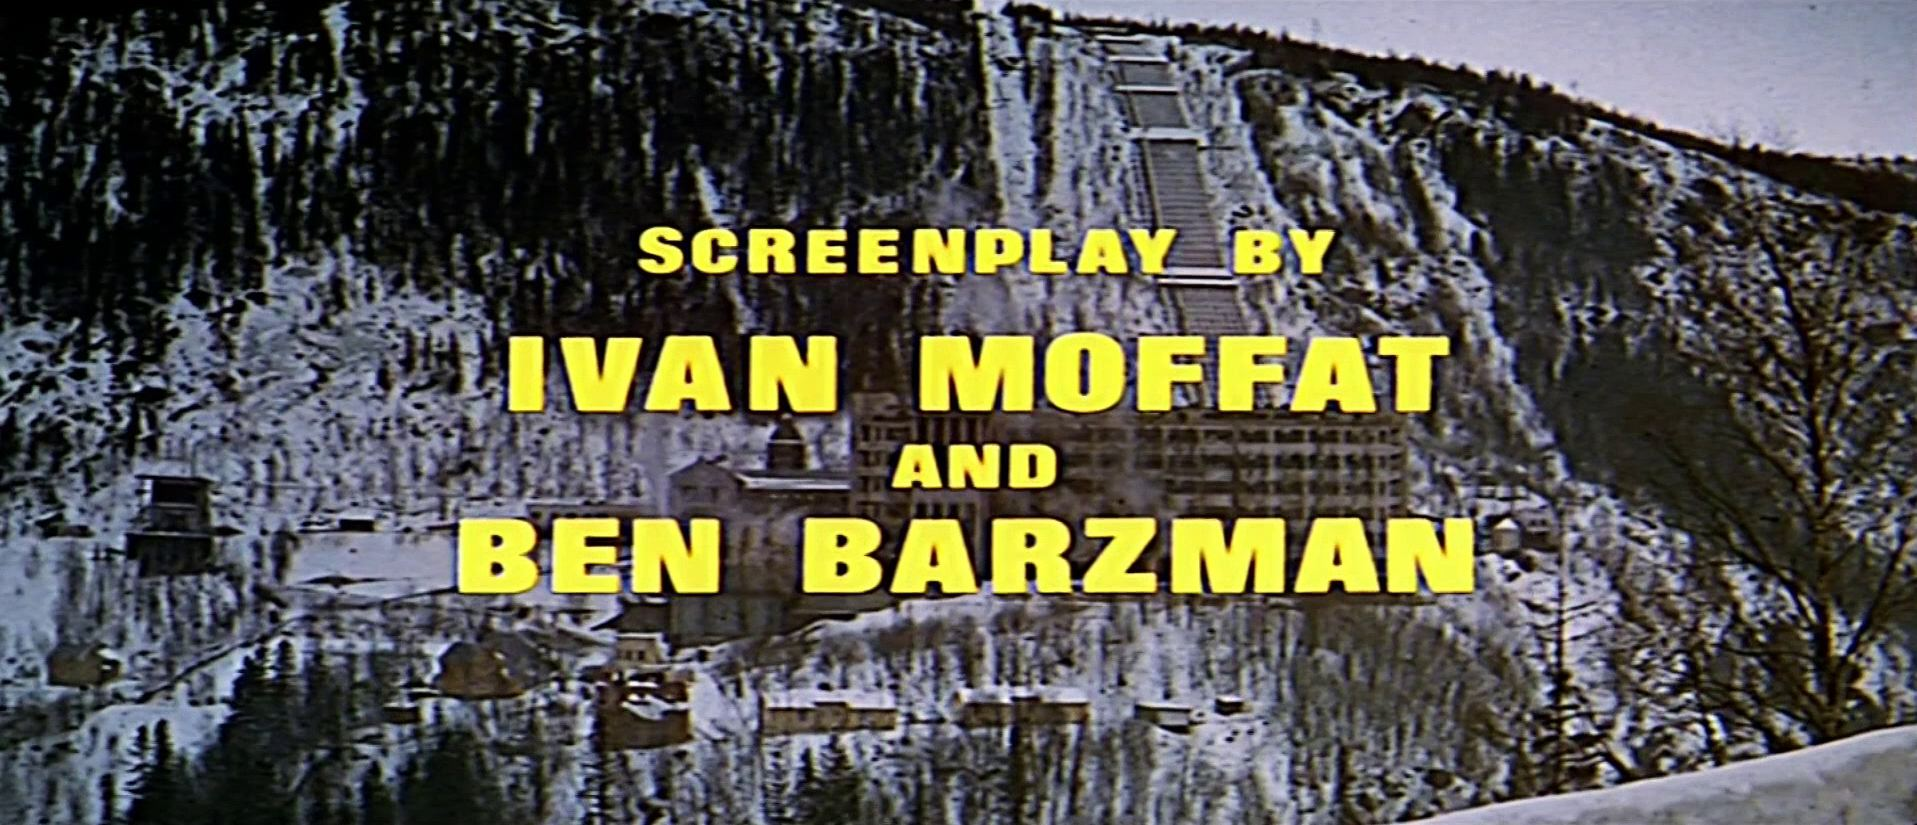 Main title from The Heroes of Telemark (1965) (16). Screenplay by Ivan Moffat and Ben Barzman